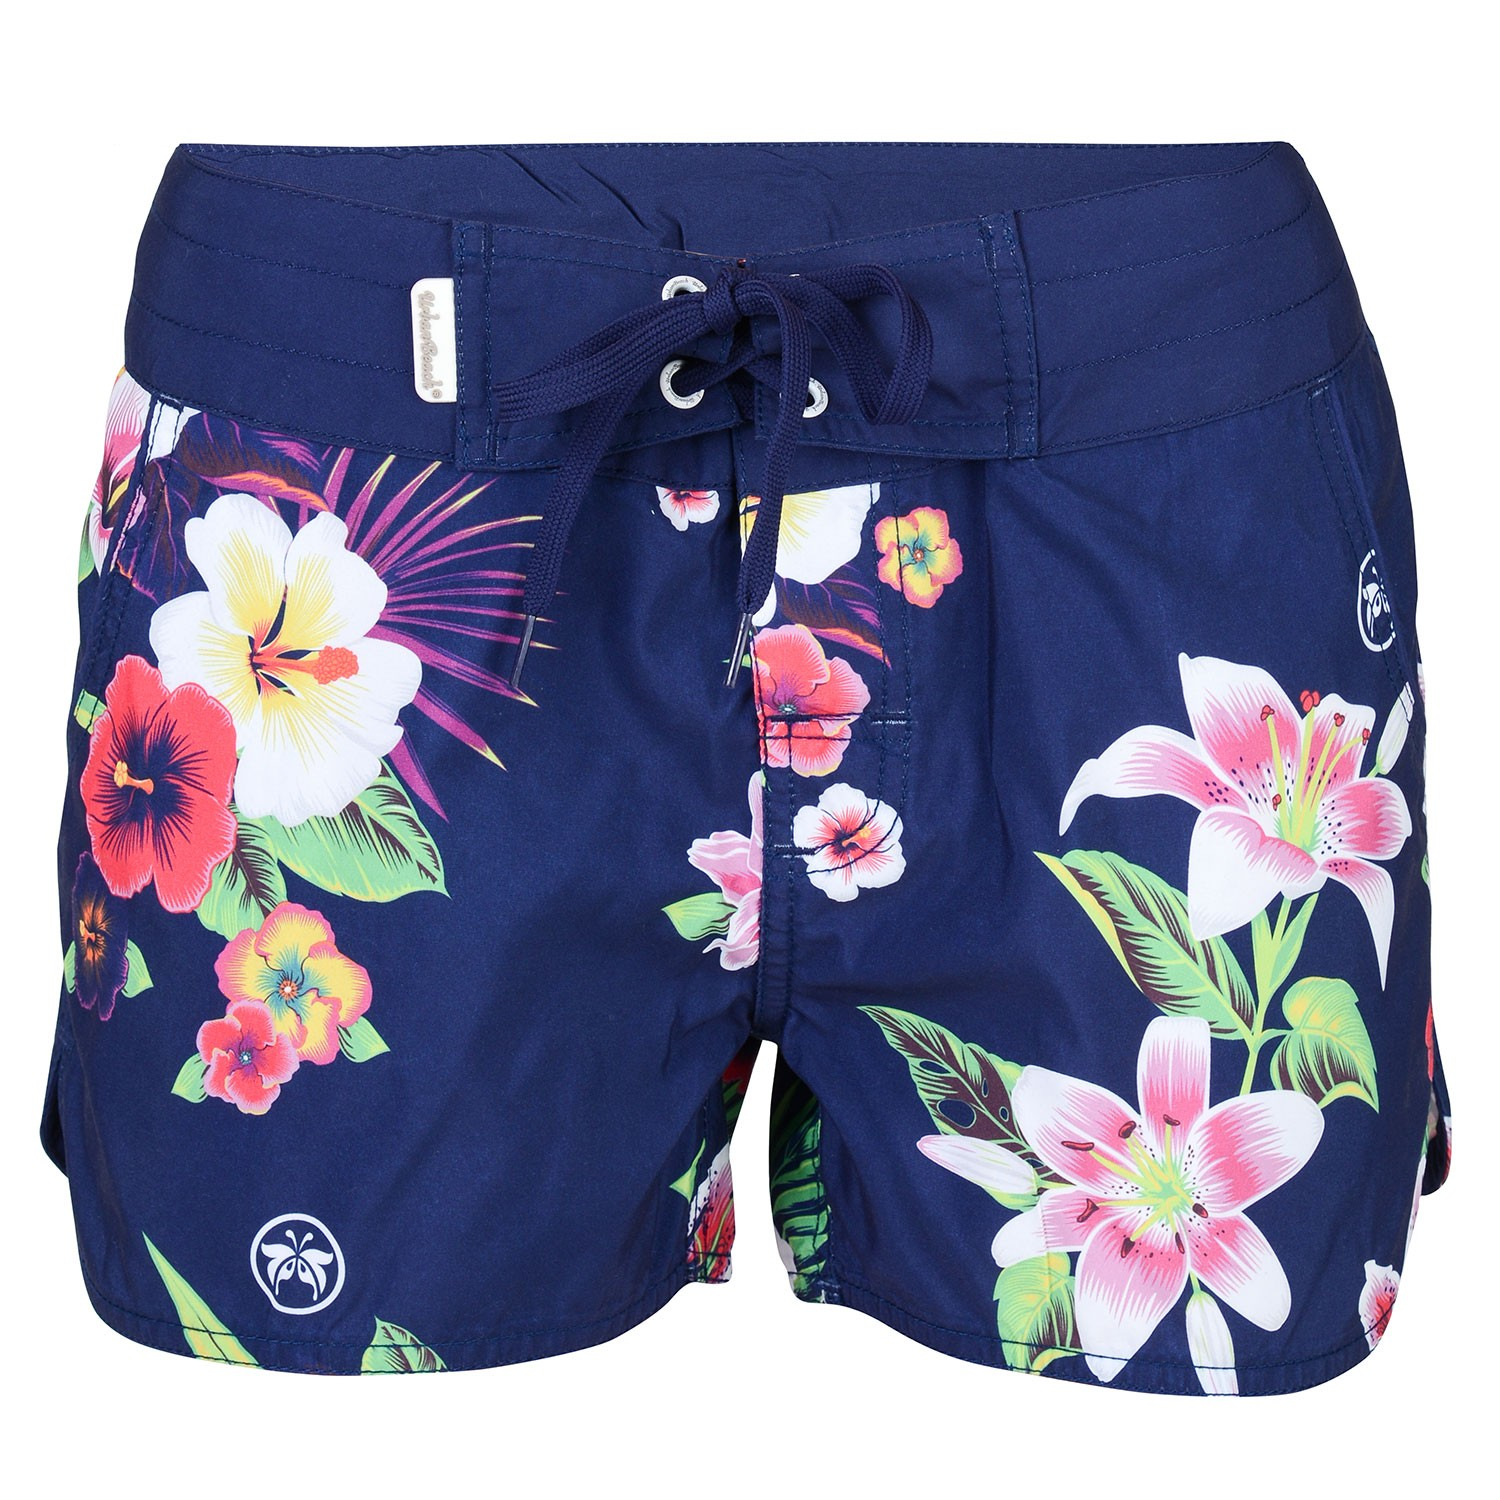 65adbfd3f8 Boardshorts - Clothing - Womens